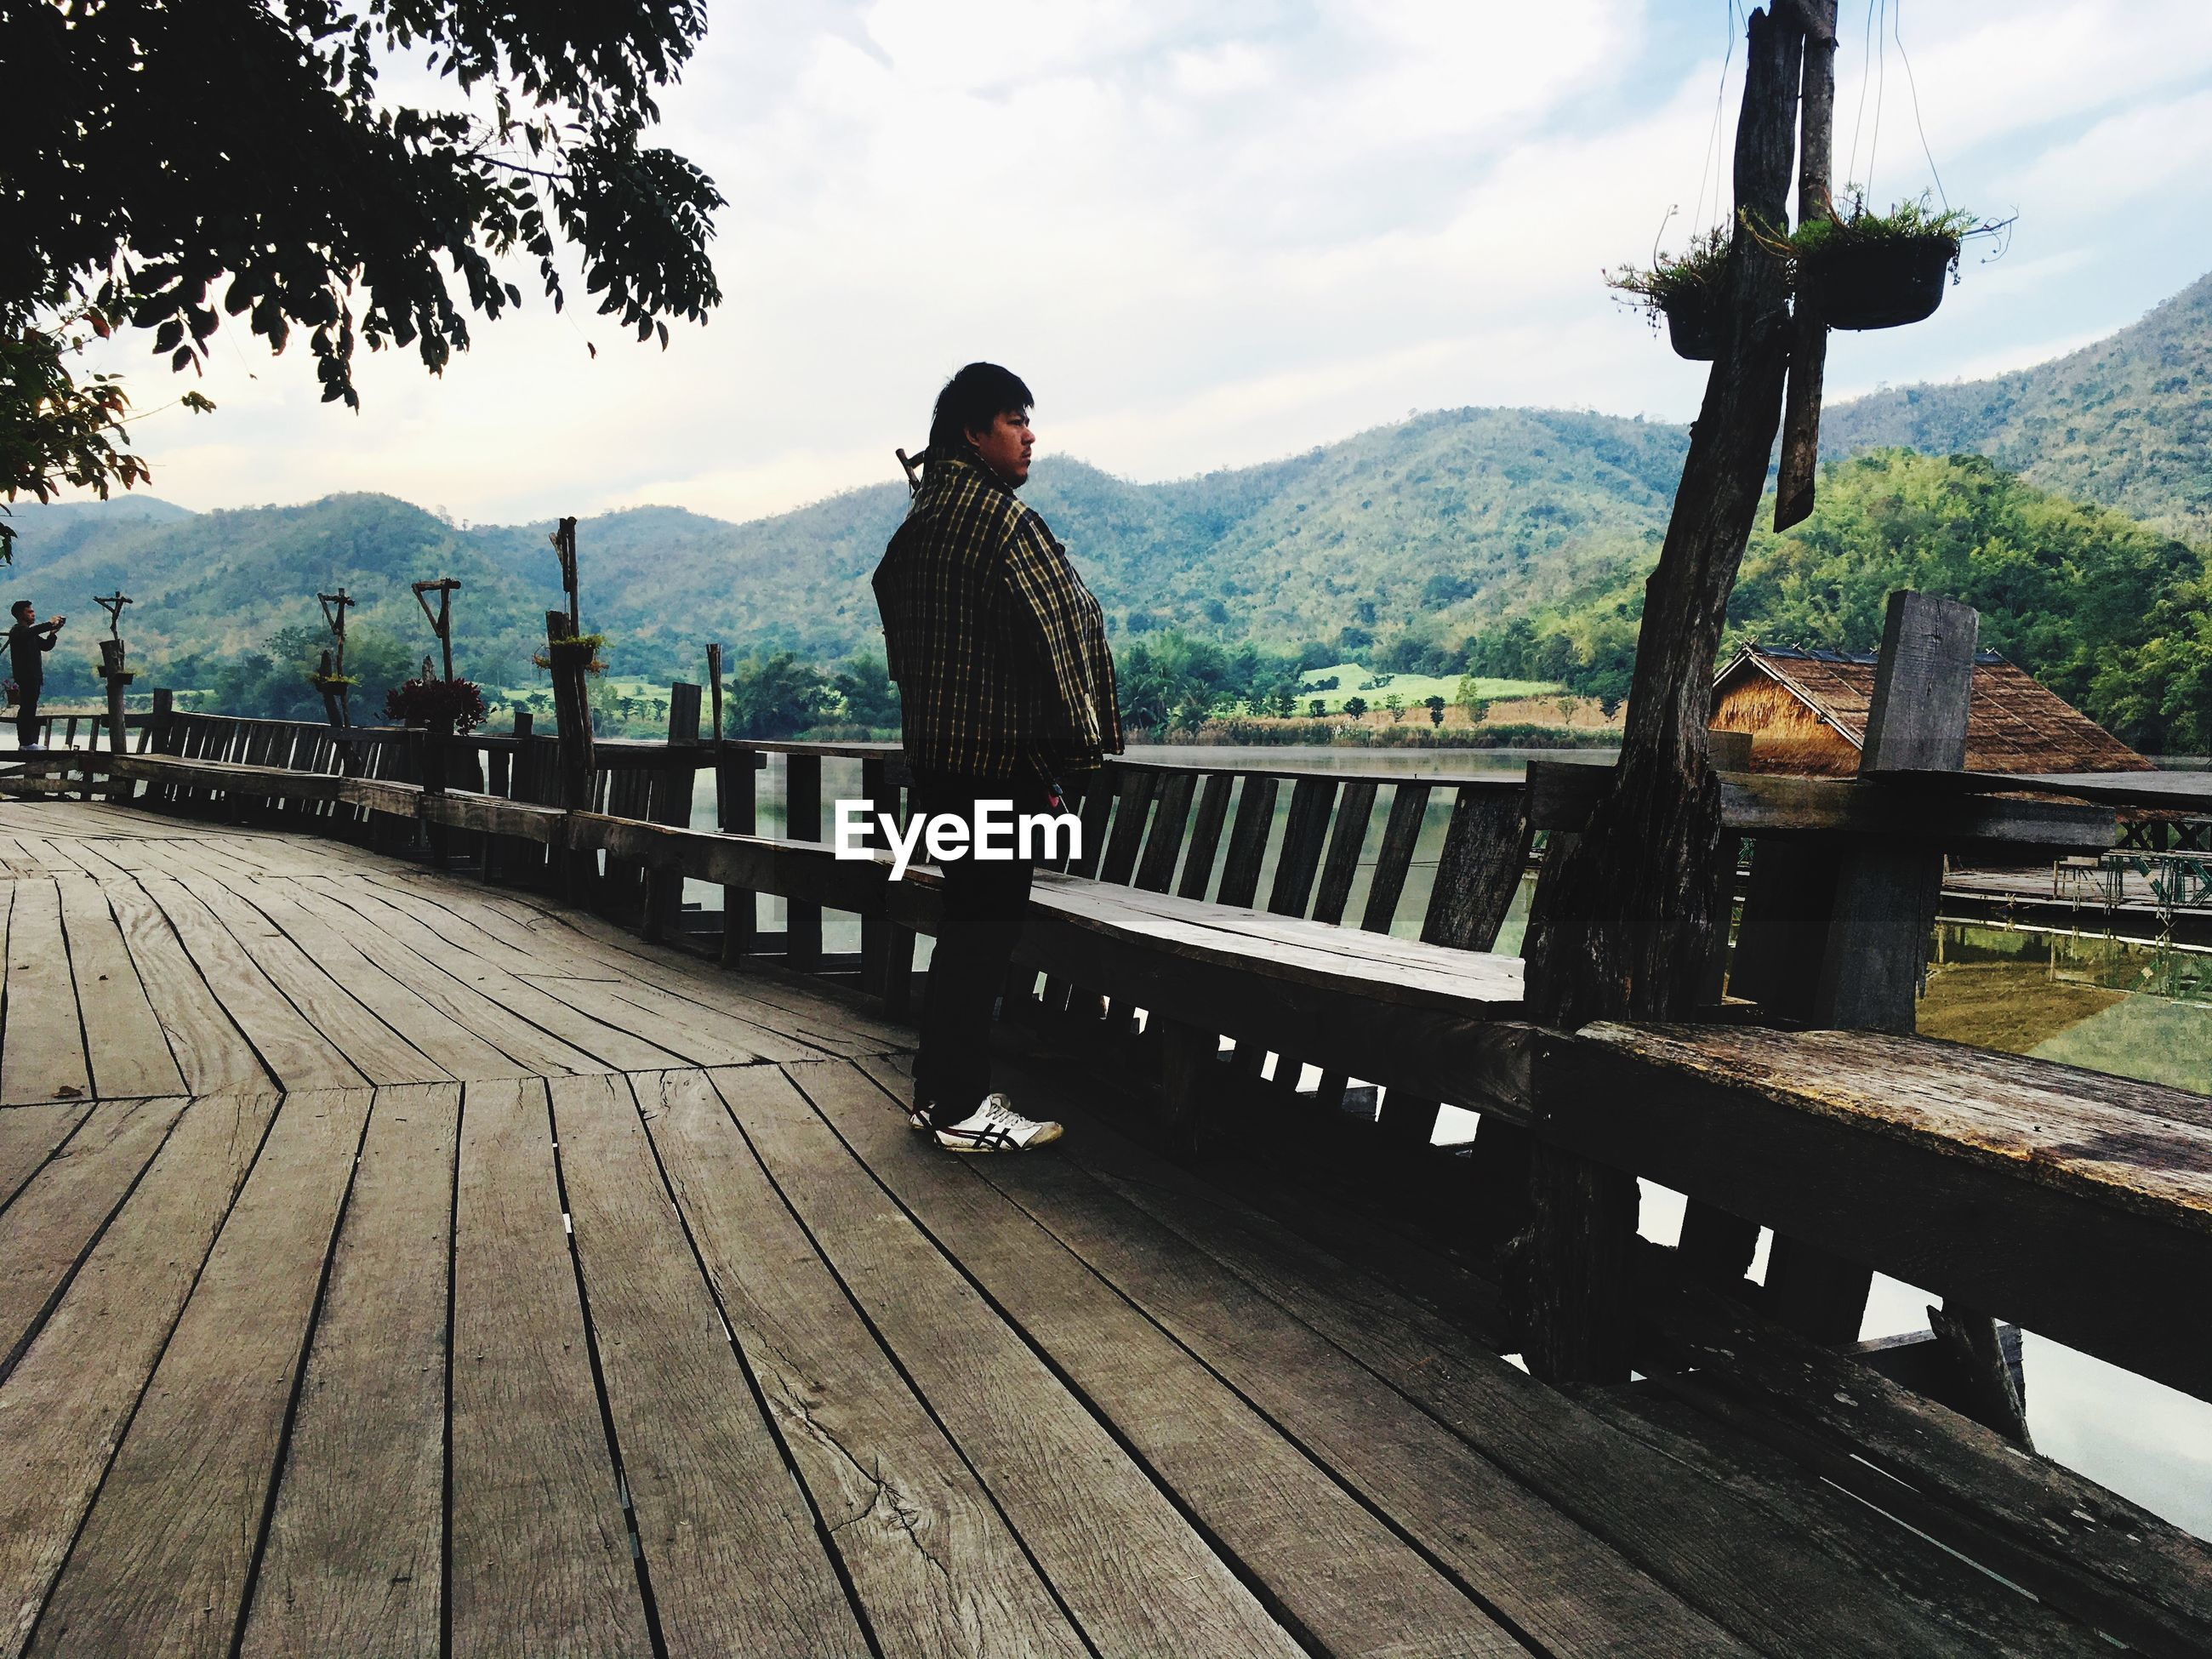 MAN STANDING ON BENCH BY RAILING AGAINST MOUNTAIN